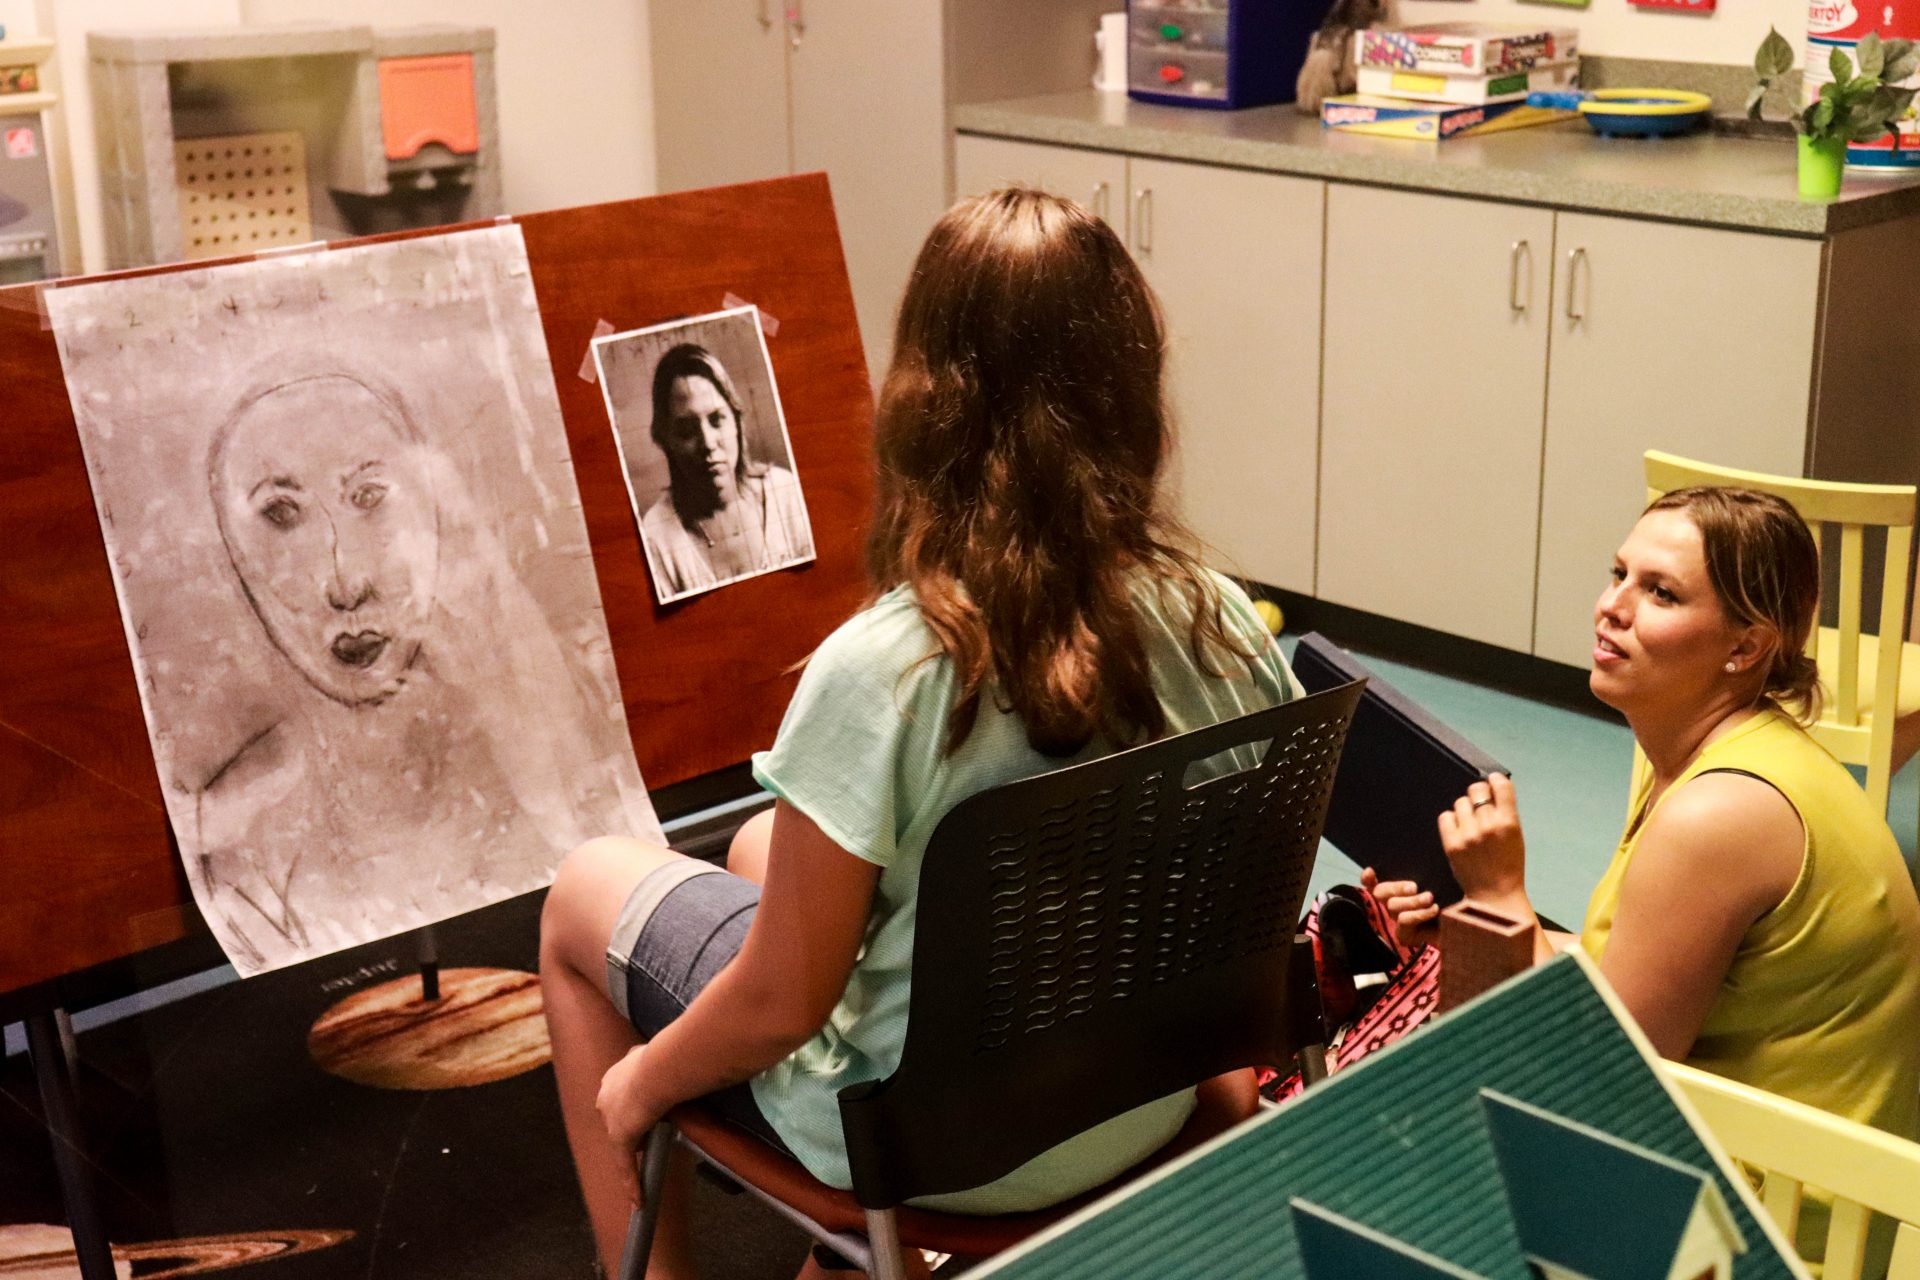 Sarah Sinkinson and her daughter collaborate on a charcoal drawing in a visitation room at Women in Recovery.